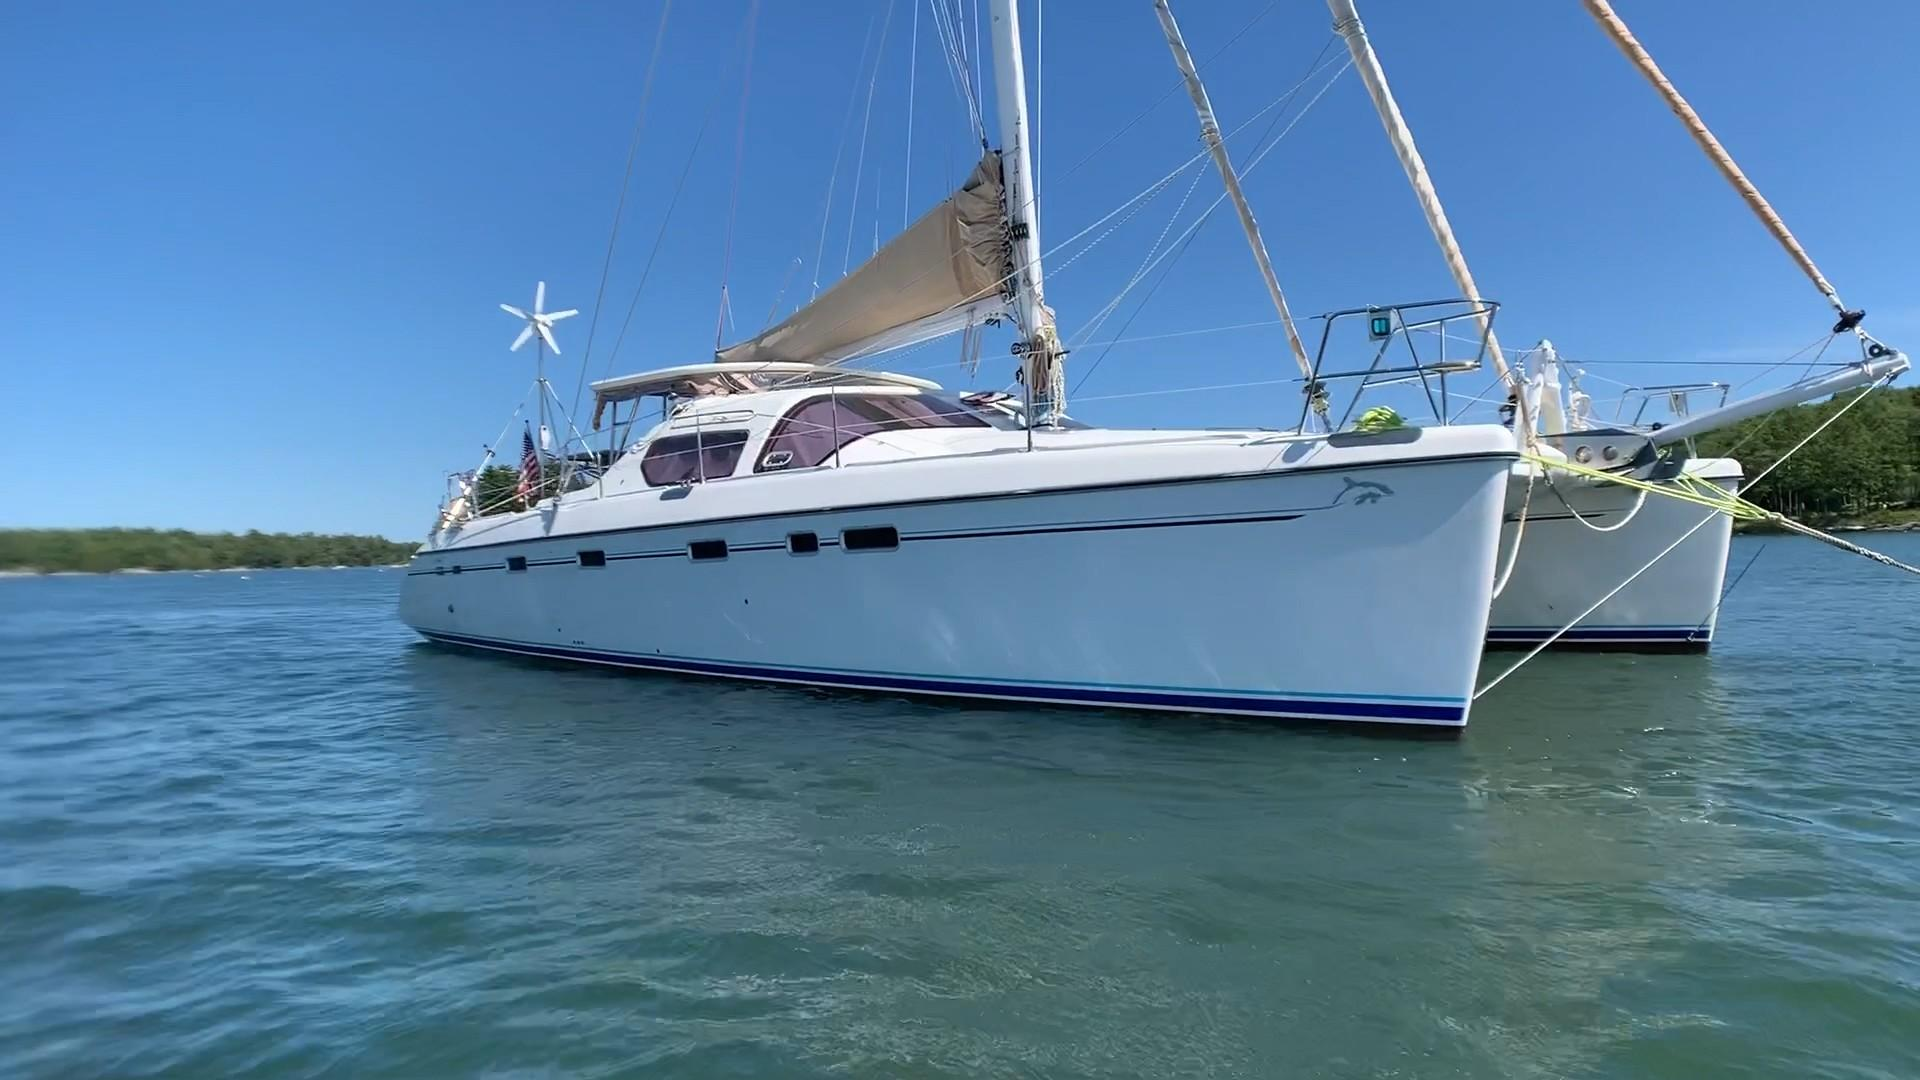 5 Oceans Marine Group – Used Boats For Sale 46 – 50 Feet